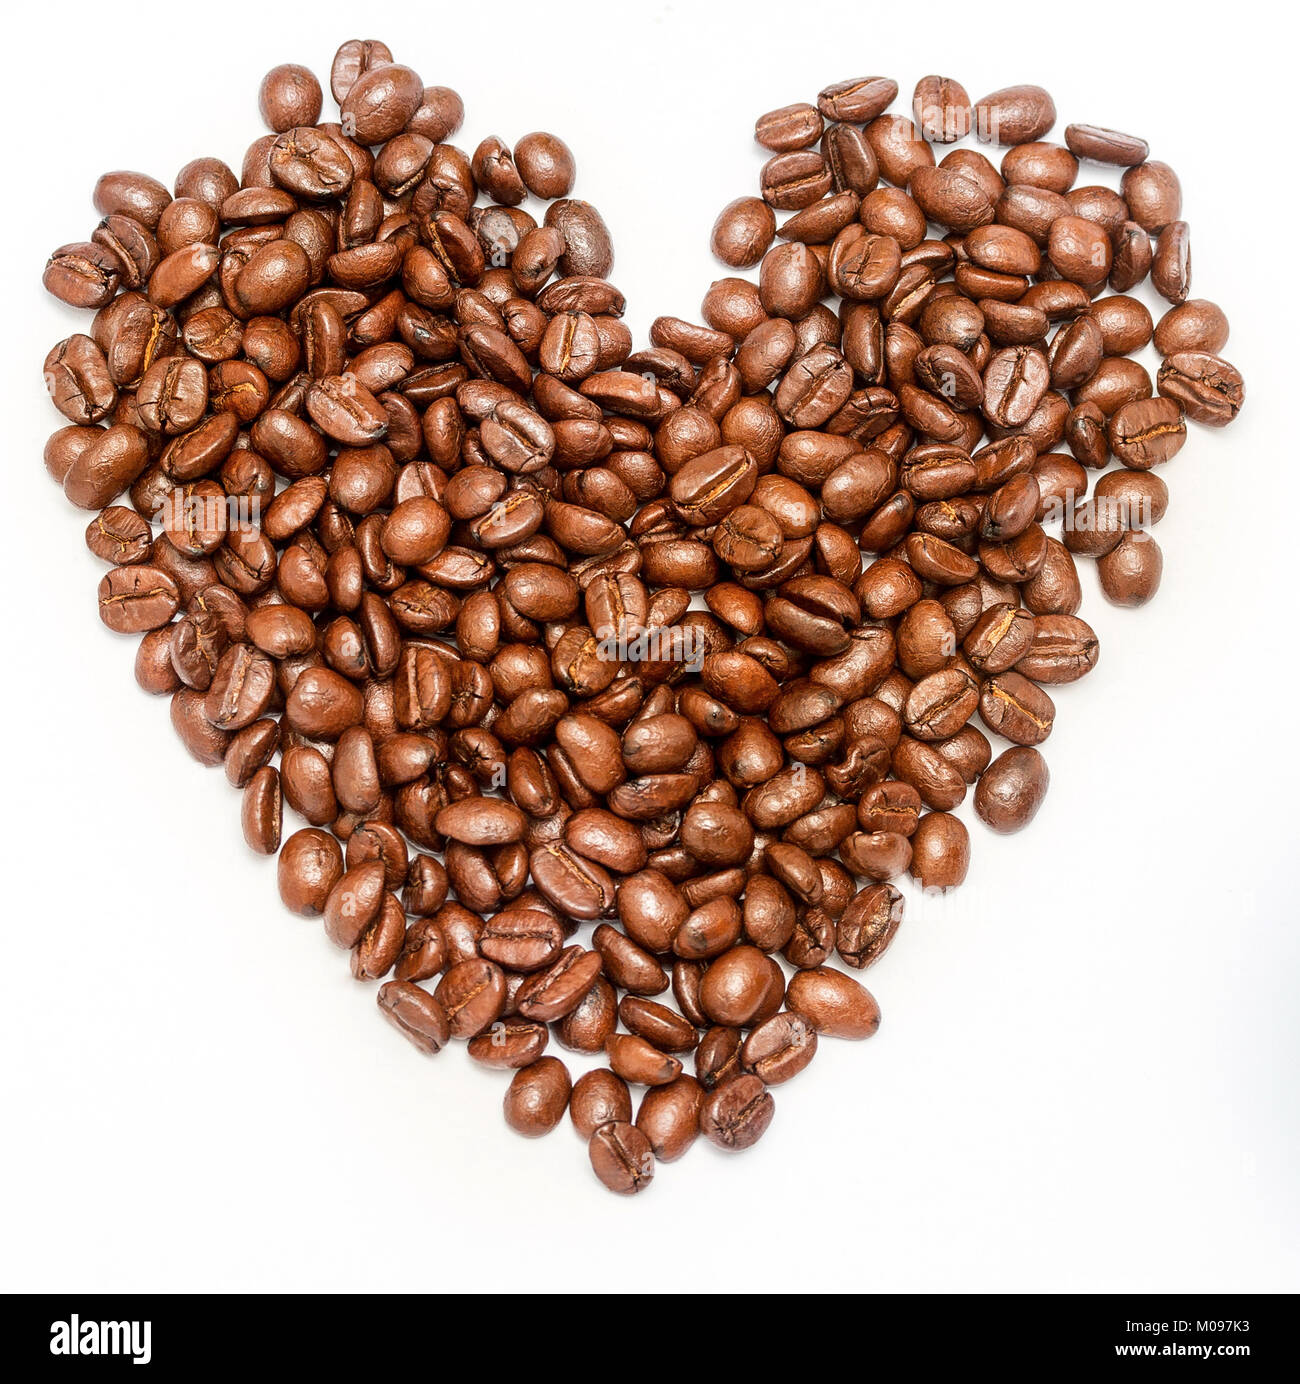 Coffee Beans Heart Meaning Hot Drink And Roasted Stock Photo